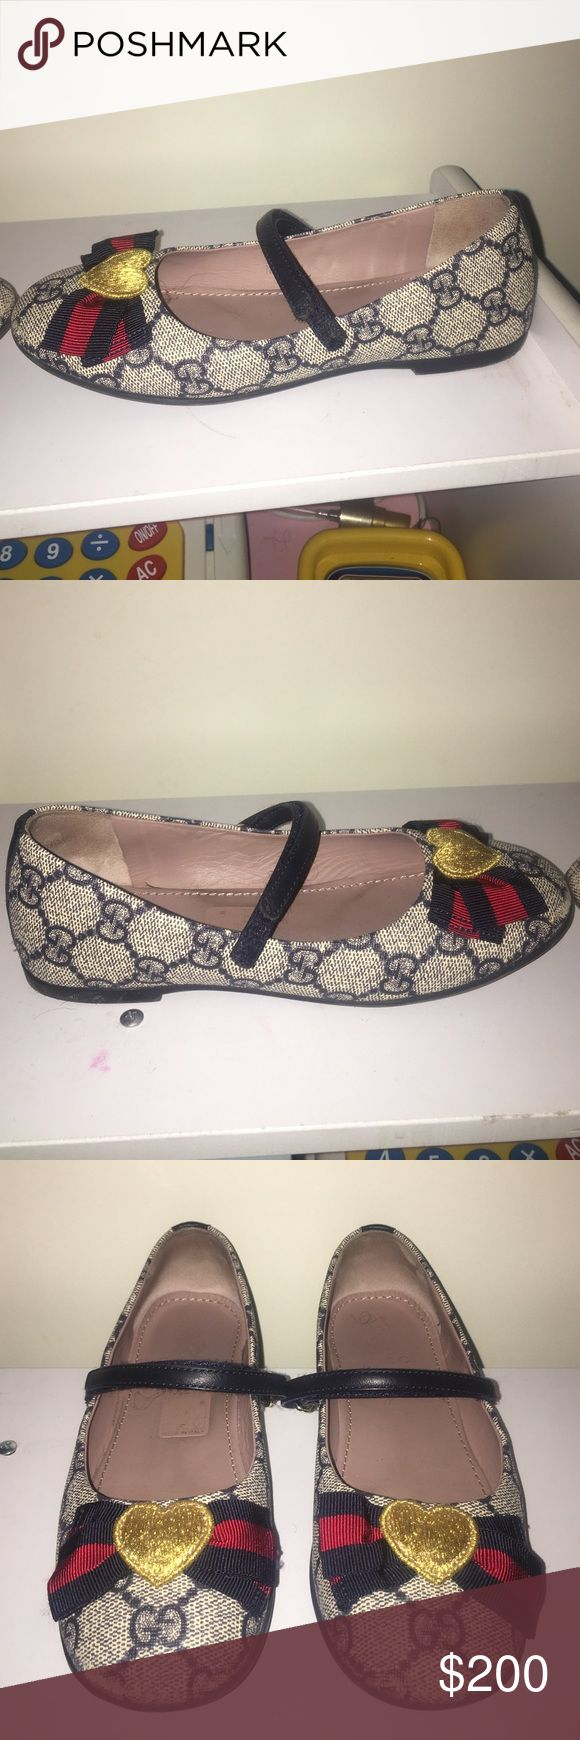 Kids Gucci shoes Kids Gucci shoes 2016 season! Worn THREE TIMES Gucci Shoes Flats & Loafers